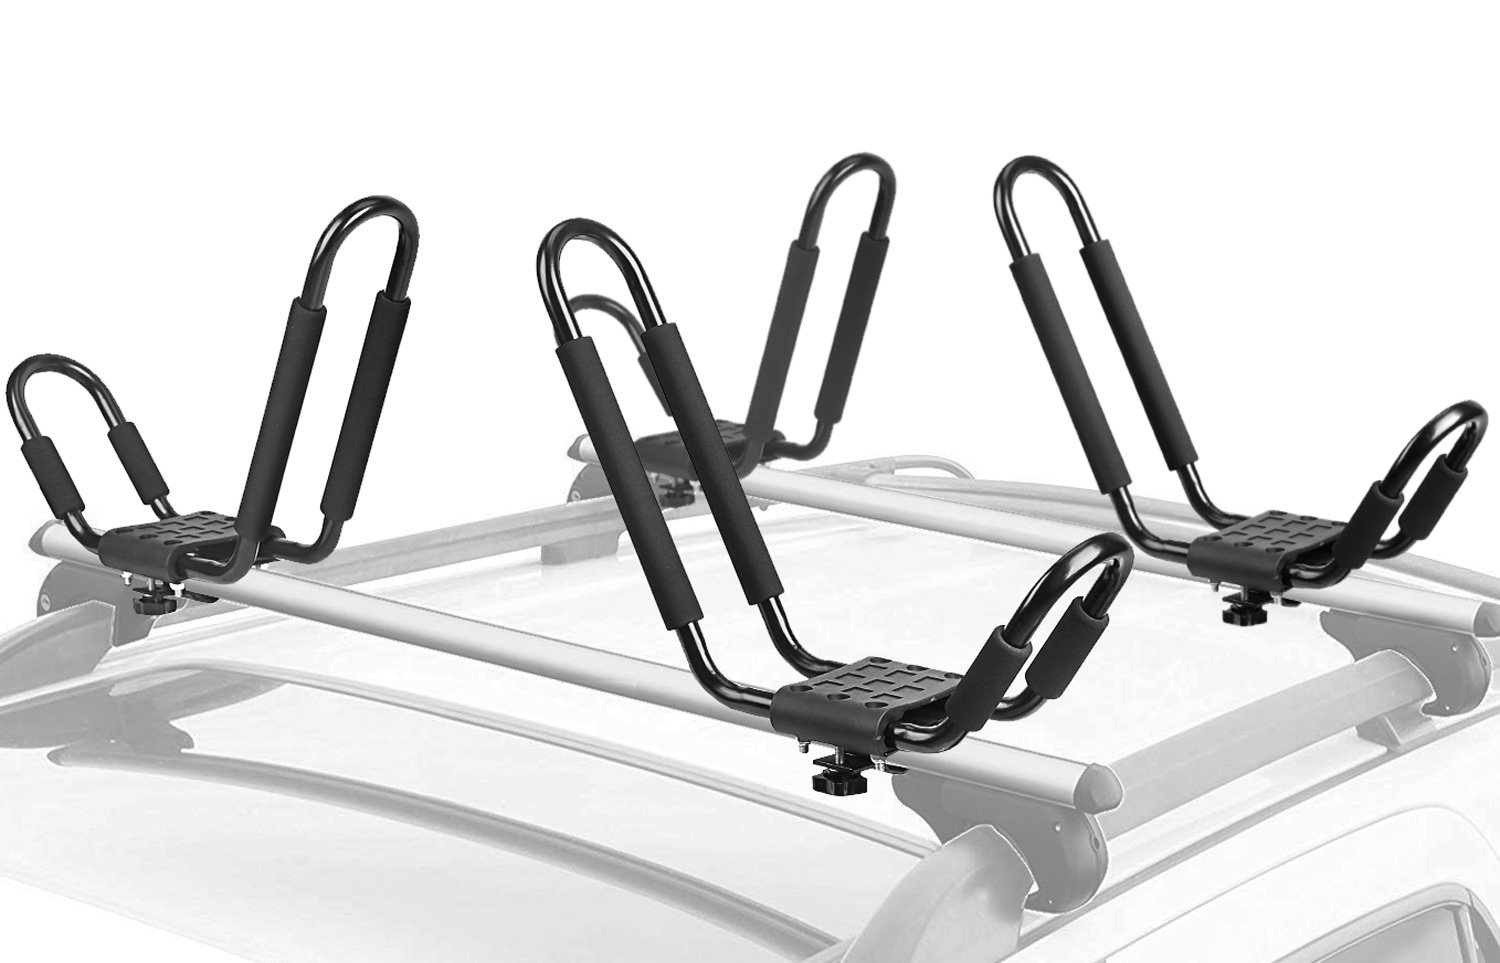 Leader Accessories Kayak Rack 4 PCS/Set J Bar for Canoe Surf Board SUP On Roof Top Mount Crossbar with 4 pcs Tie Down Rachet Straps